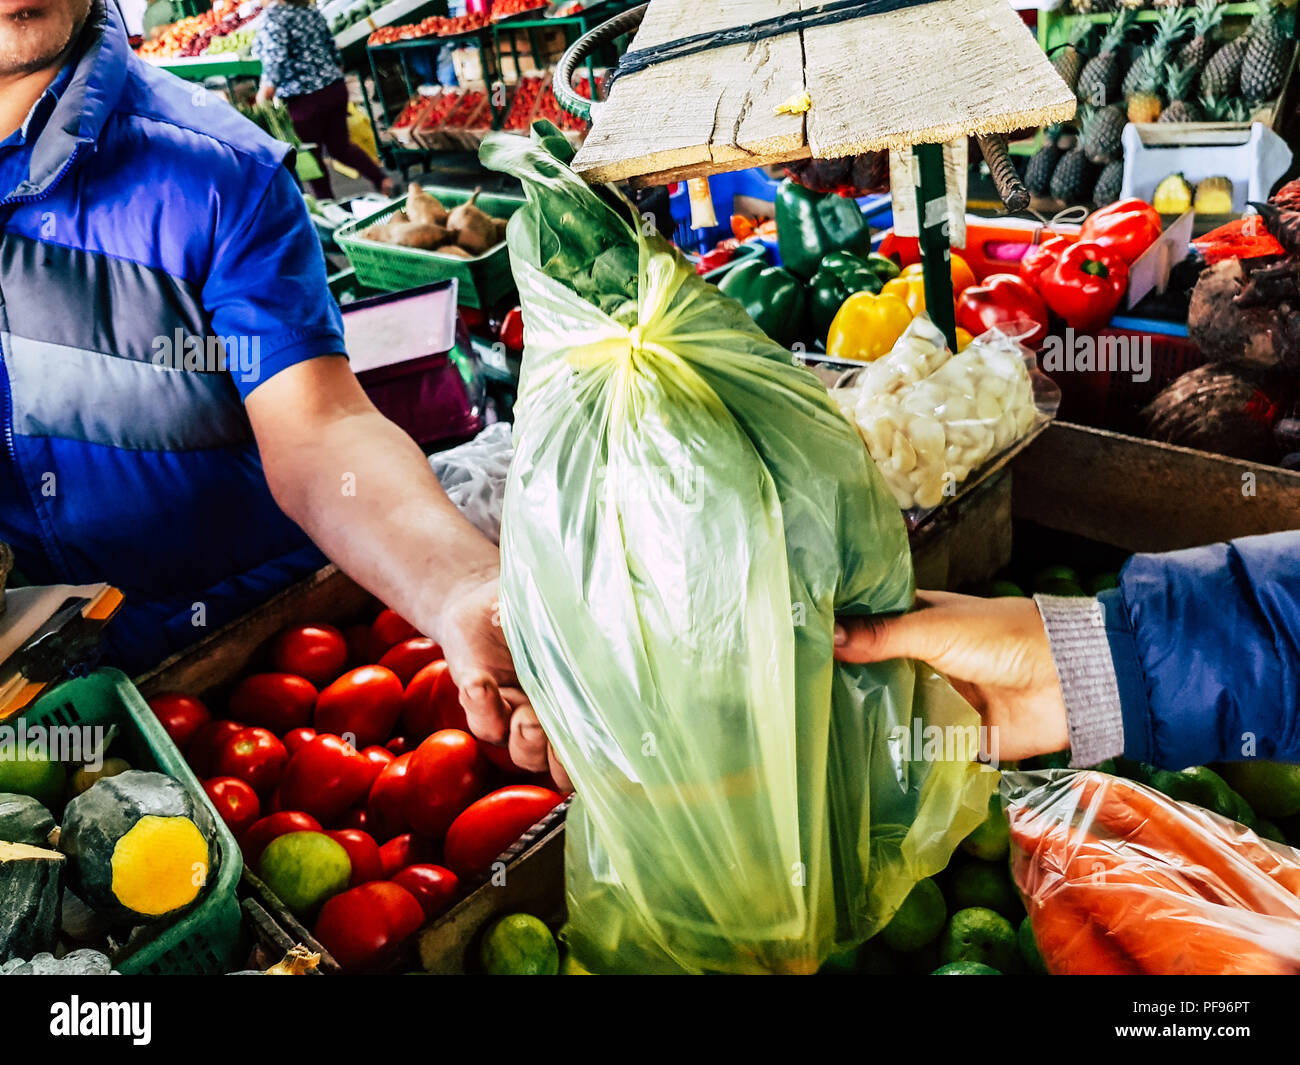 Sale of vegetables where the seller delivers a bag with groceries bought by the customer - Stock Image